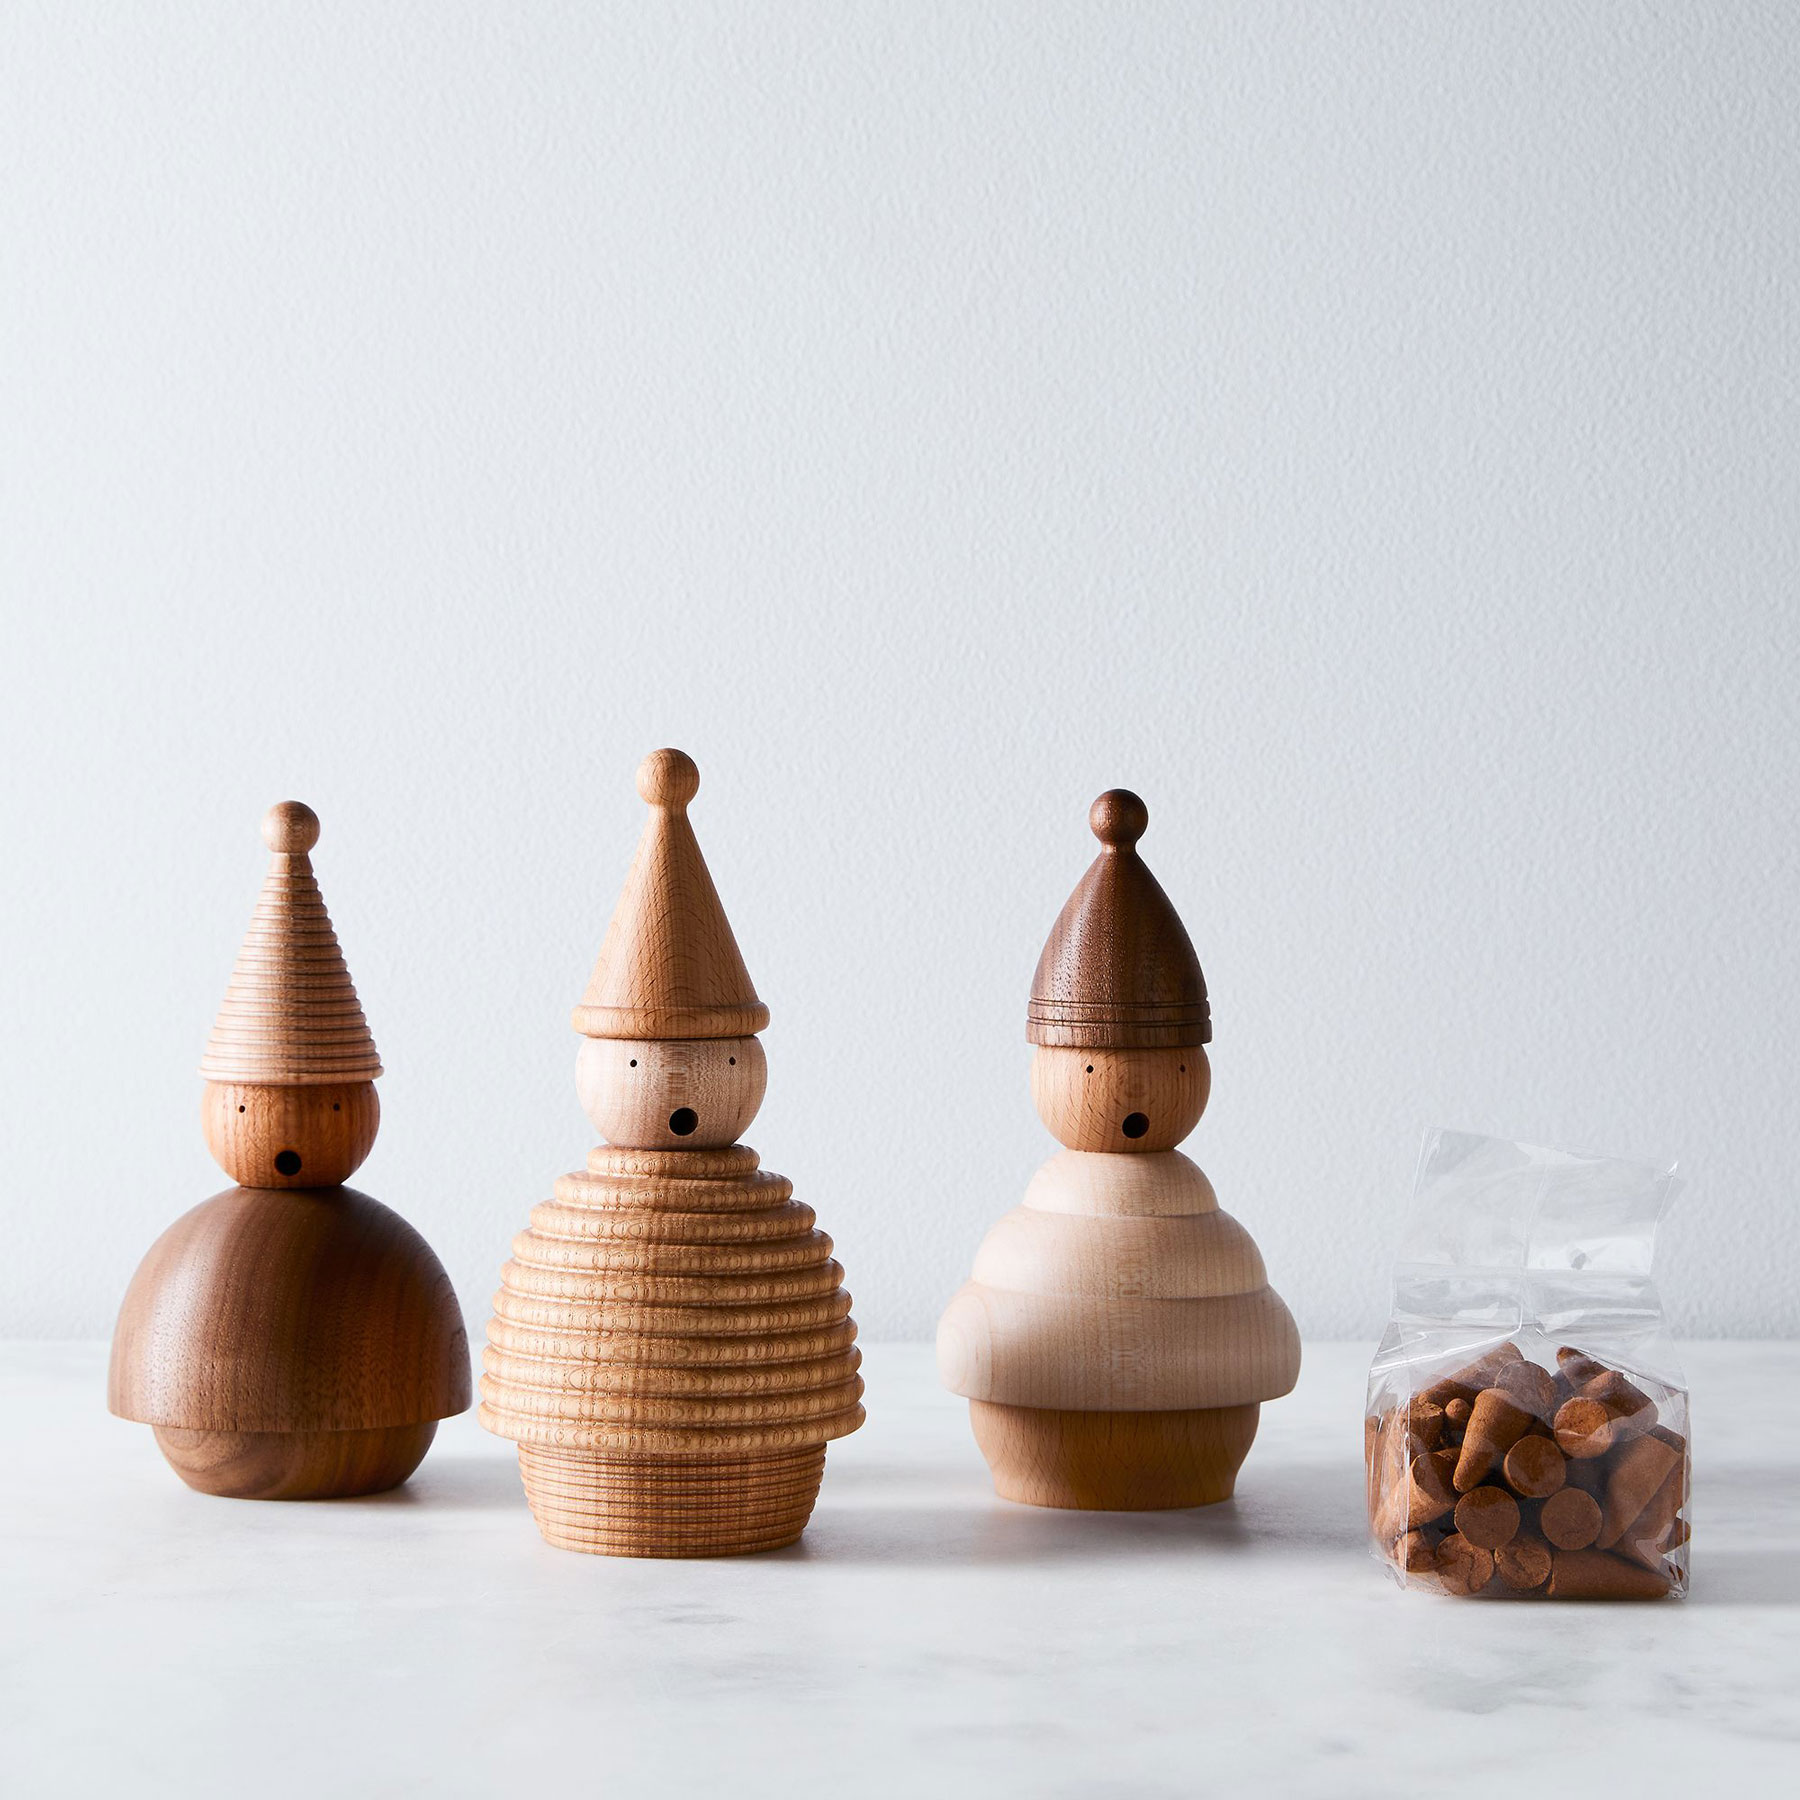 Best housewarming gifts, ideas - Farmhouse Pottery Handmade Wooden Gnome Smokers & Incense